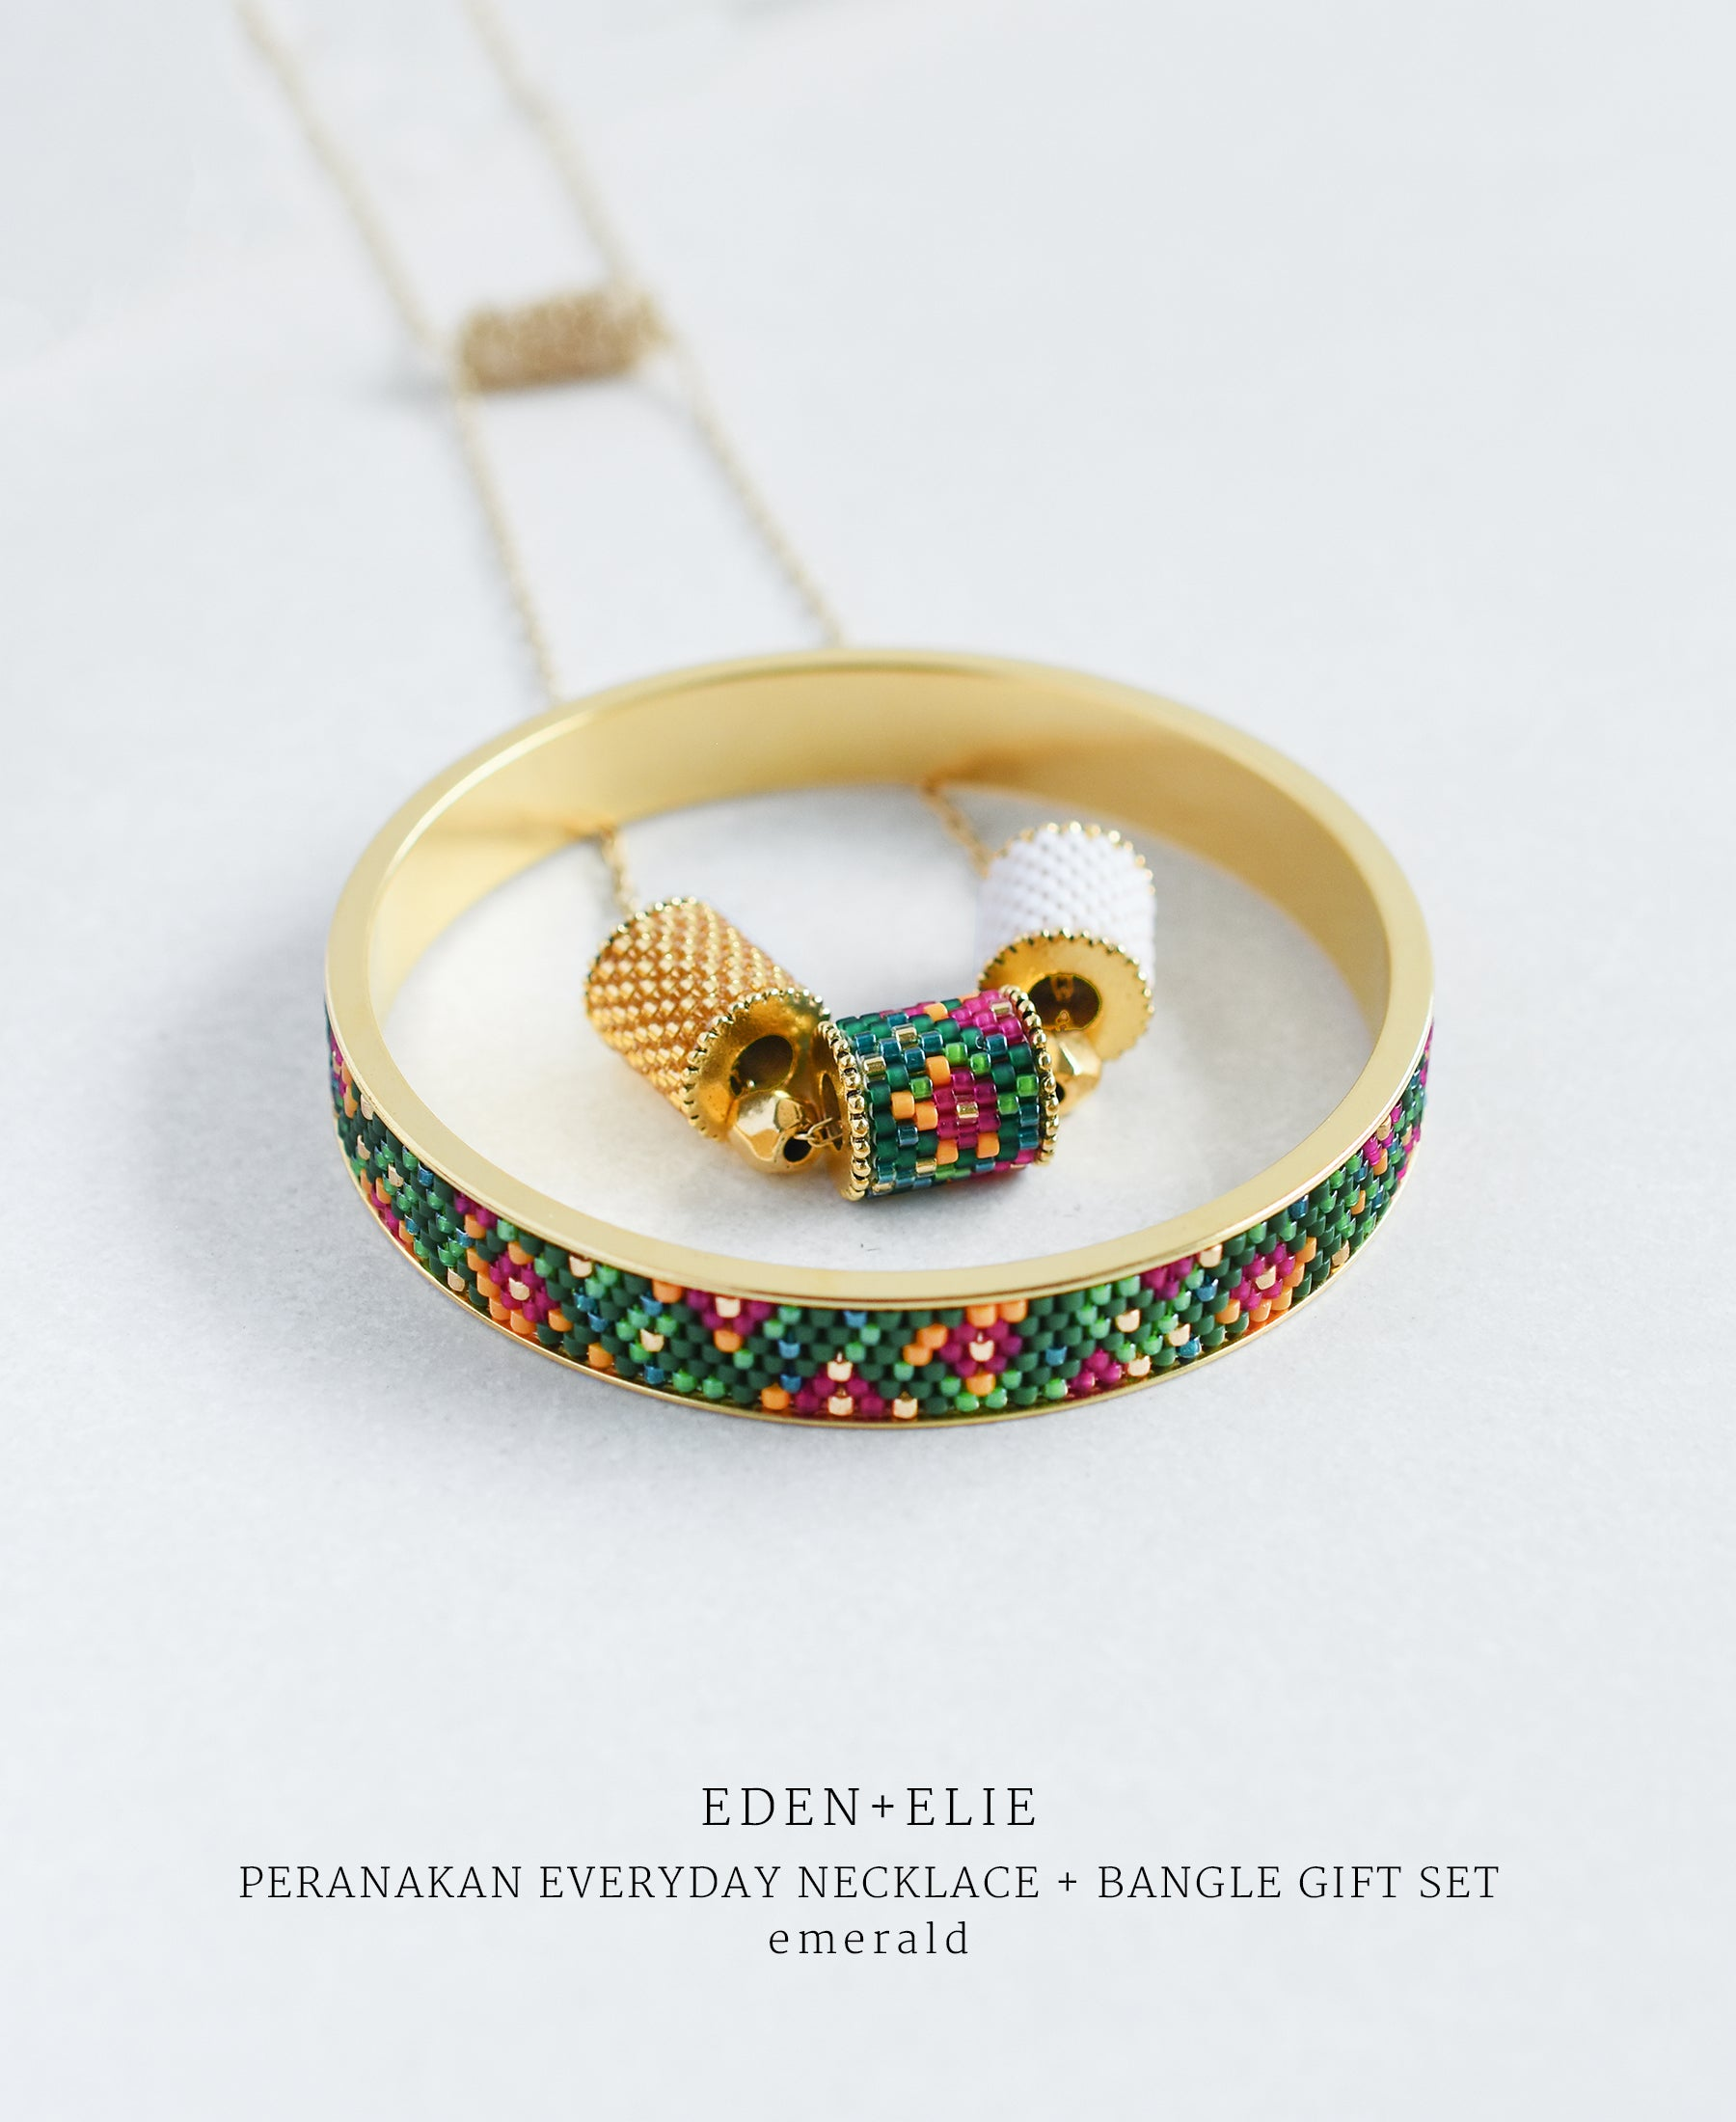 EDEN + ELIE Modern Peranakan adjustable length necklace + bangle gift set - emerald